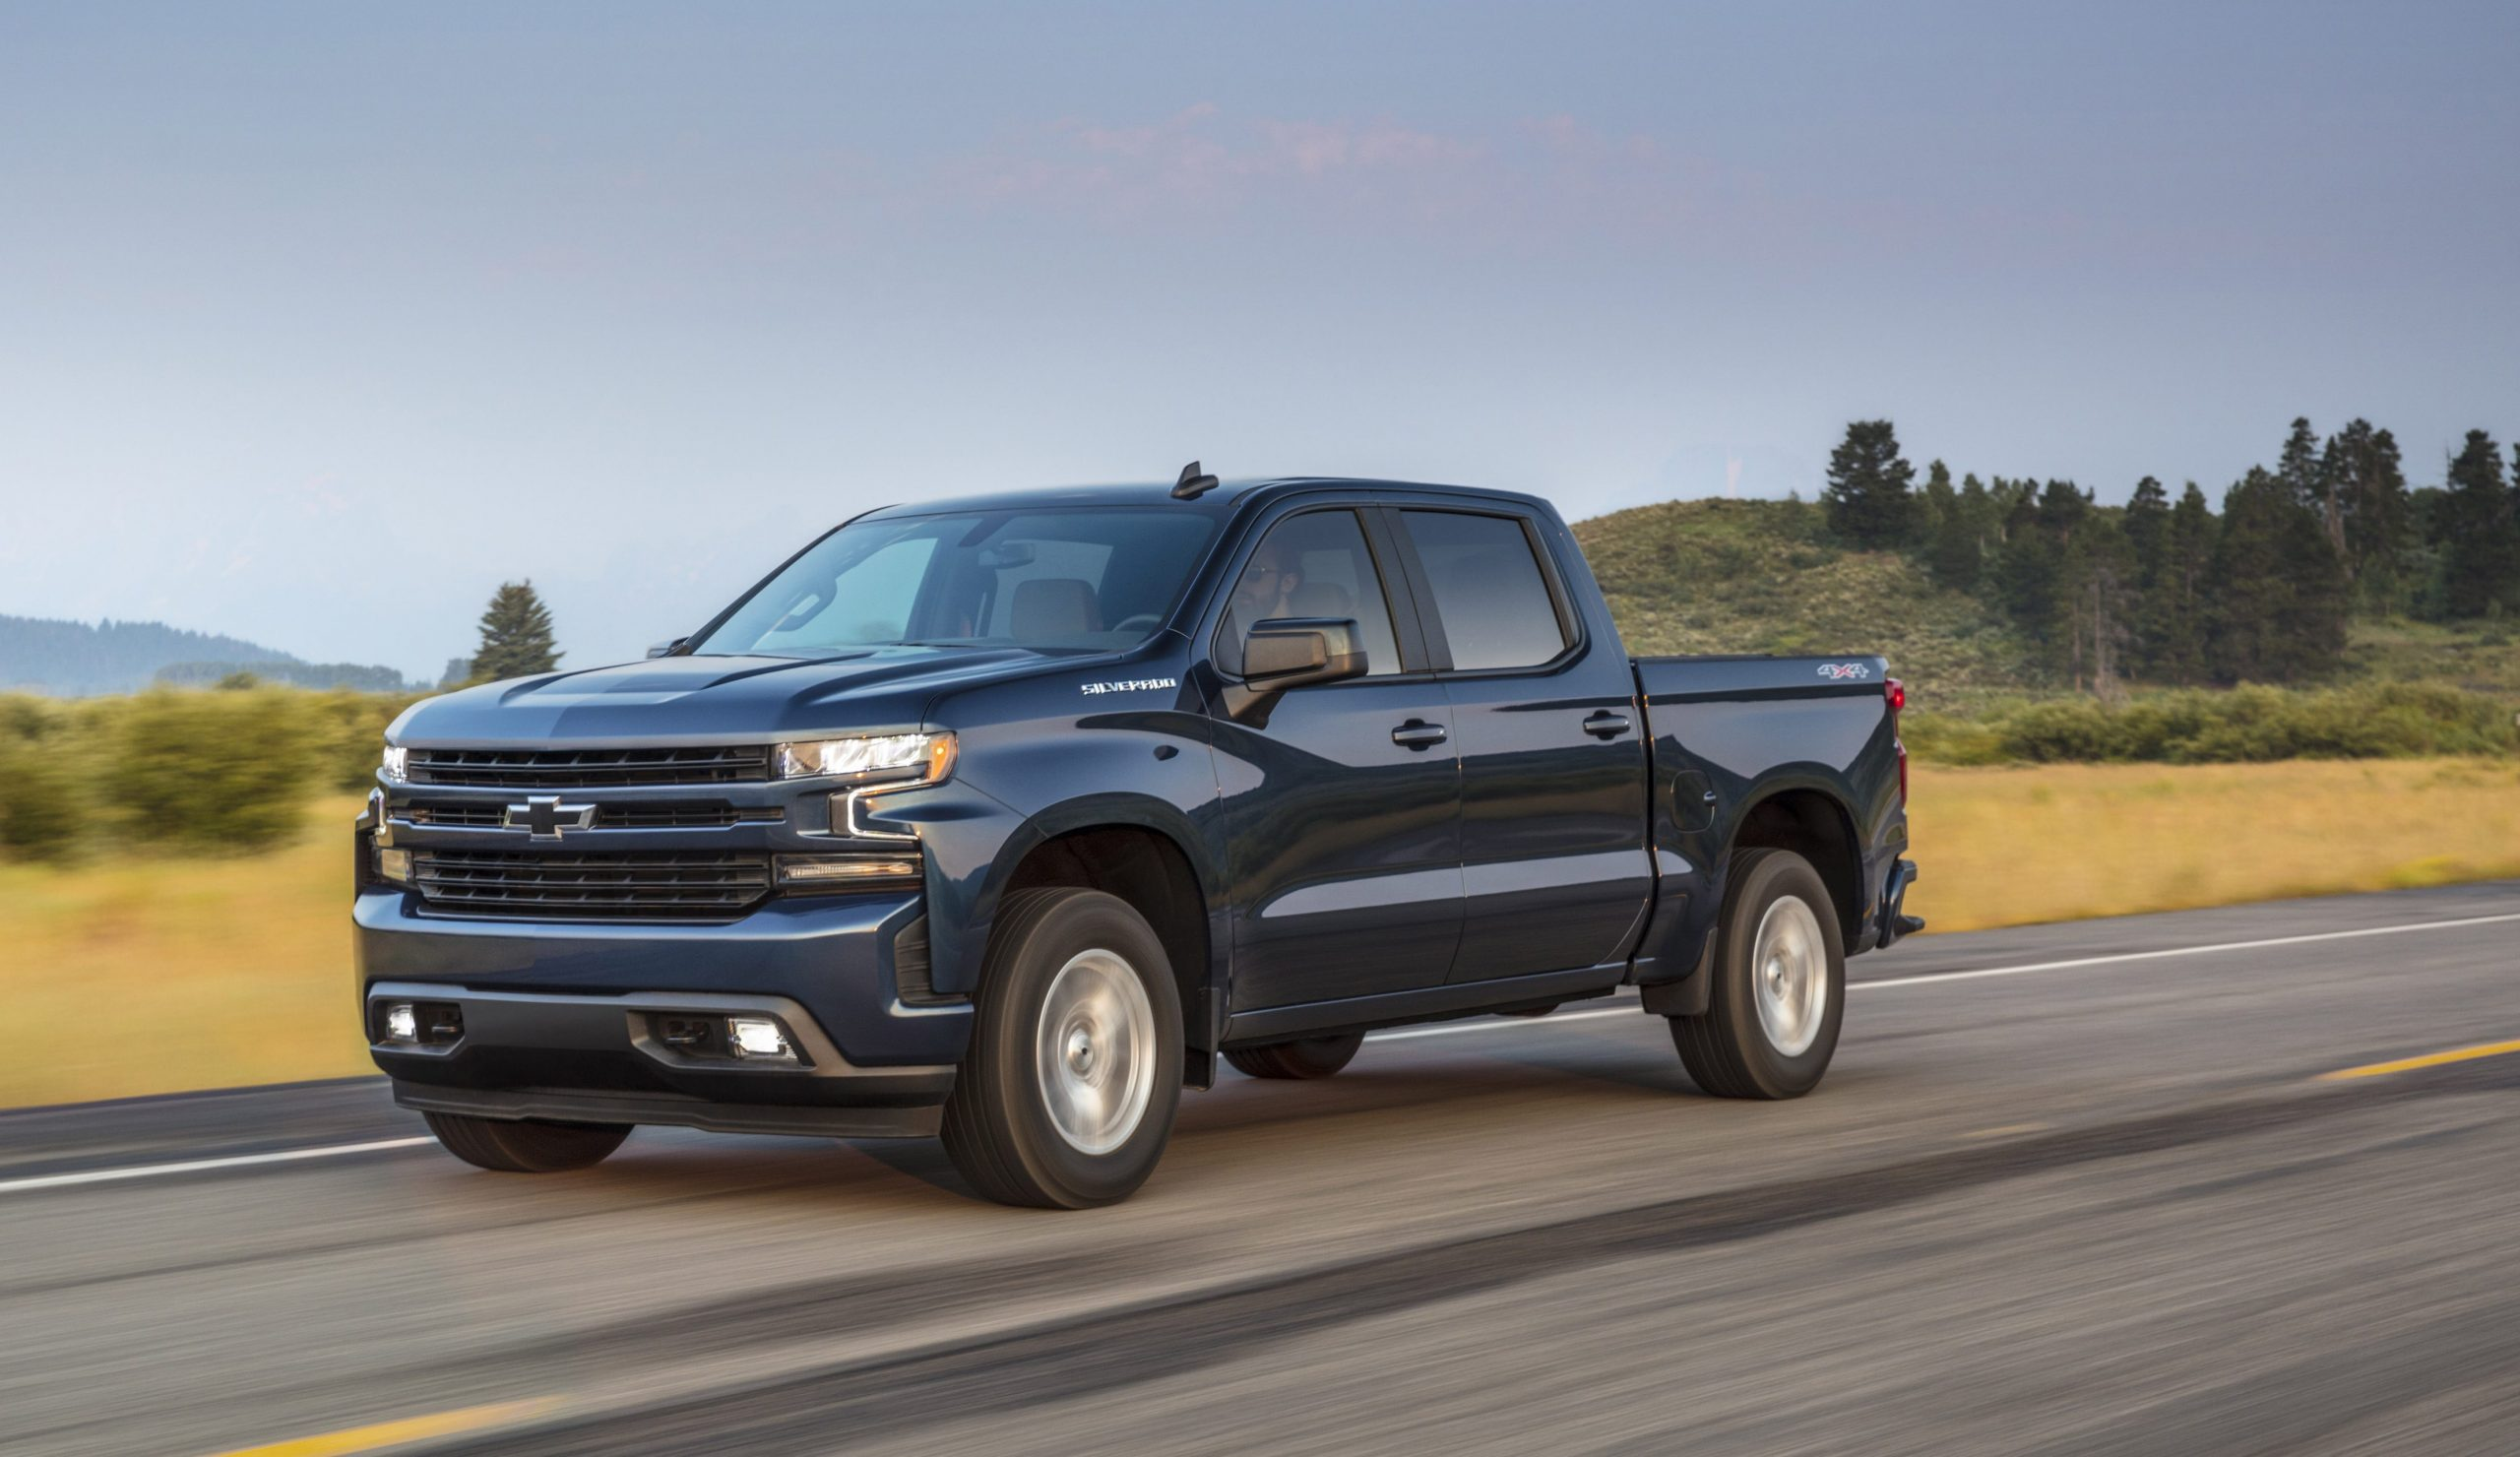 Build Your Own 2019 Chevy Silverado 1500: Here's How You Can 2021 Chevy Silverado 1500 Towing Capacity, Accessories, Air Filter